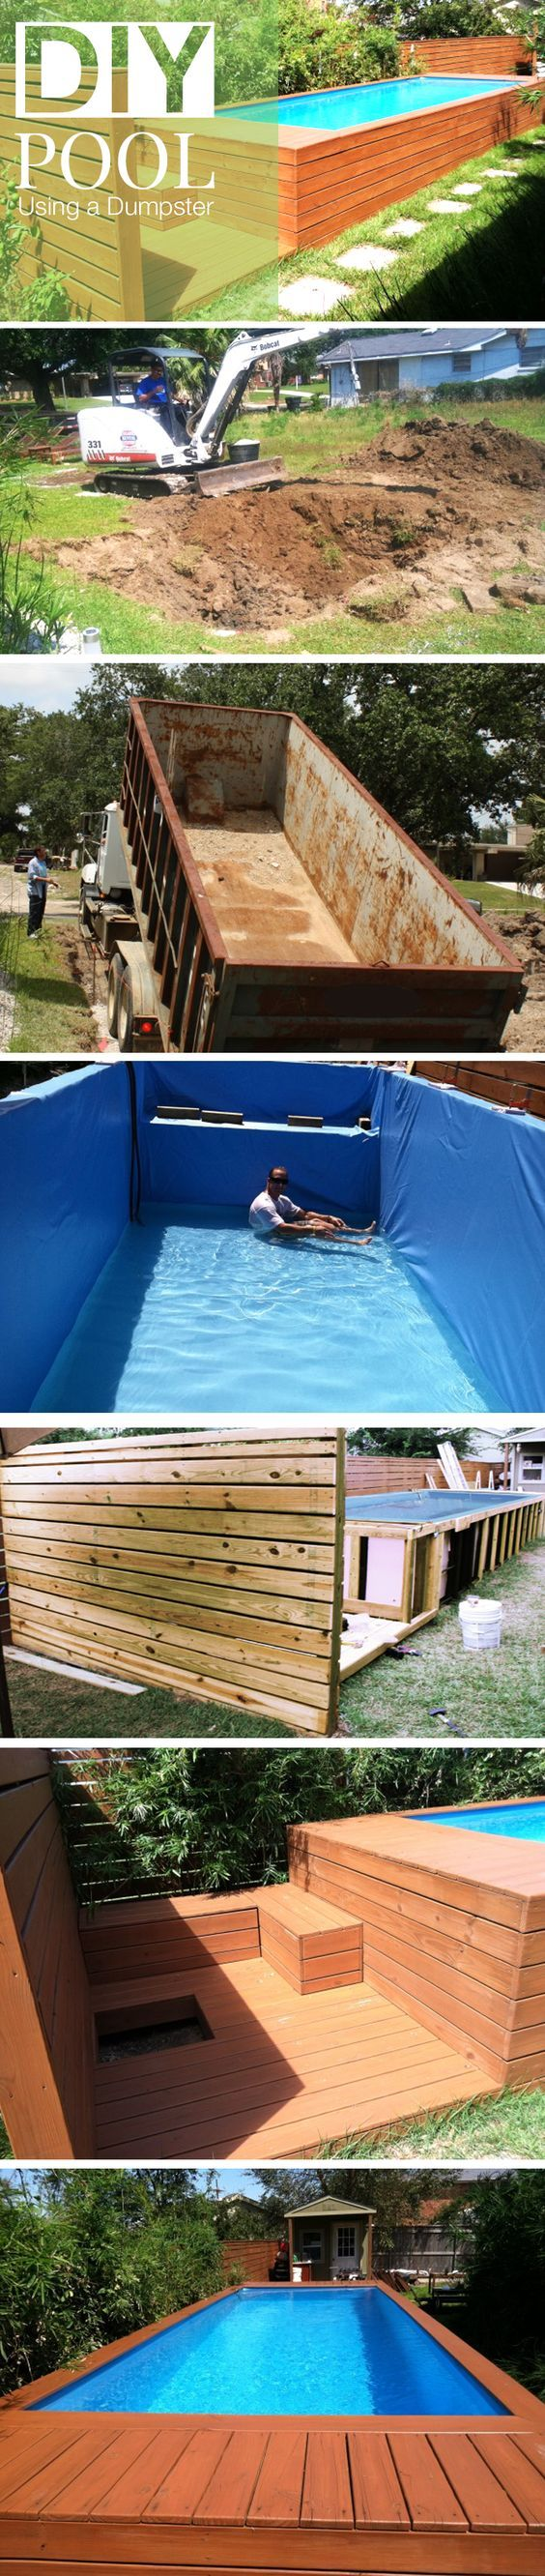 Diy dumpster pool pinterest dumpster for What s the best above ground pool